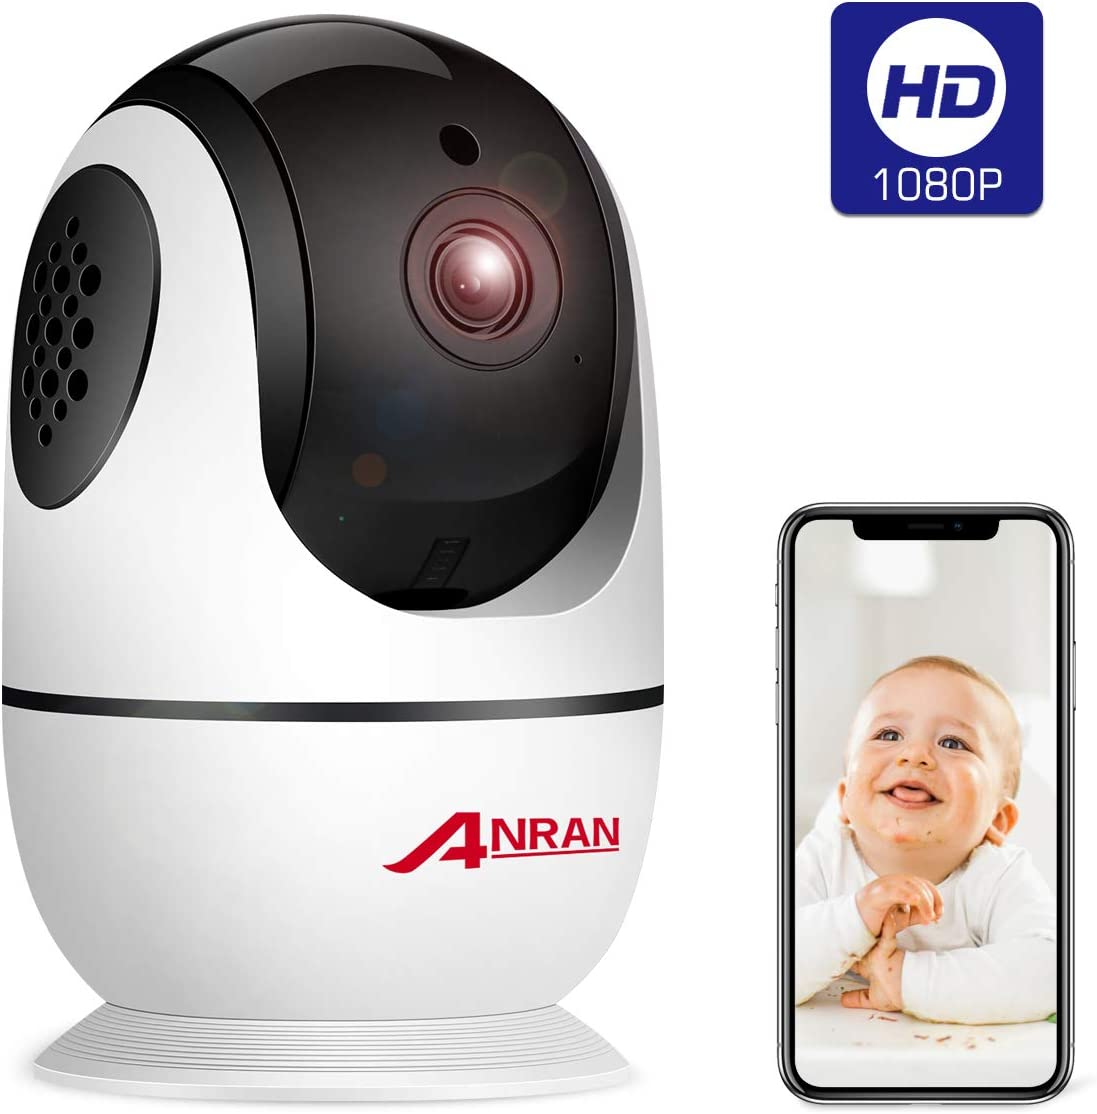 Wireless Security Camera 1080p, Home Smart WiFi Camera Indoor 360 Degree Pan Tilt for Pet,Elder,Baby Monitor with Panoramic View Night Vision,Two-Way Audio,Motion Detection,2.4G WiFi No TF Card ANRAN